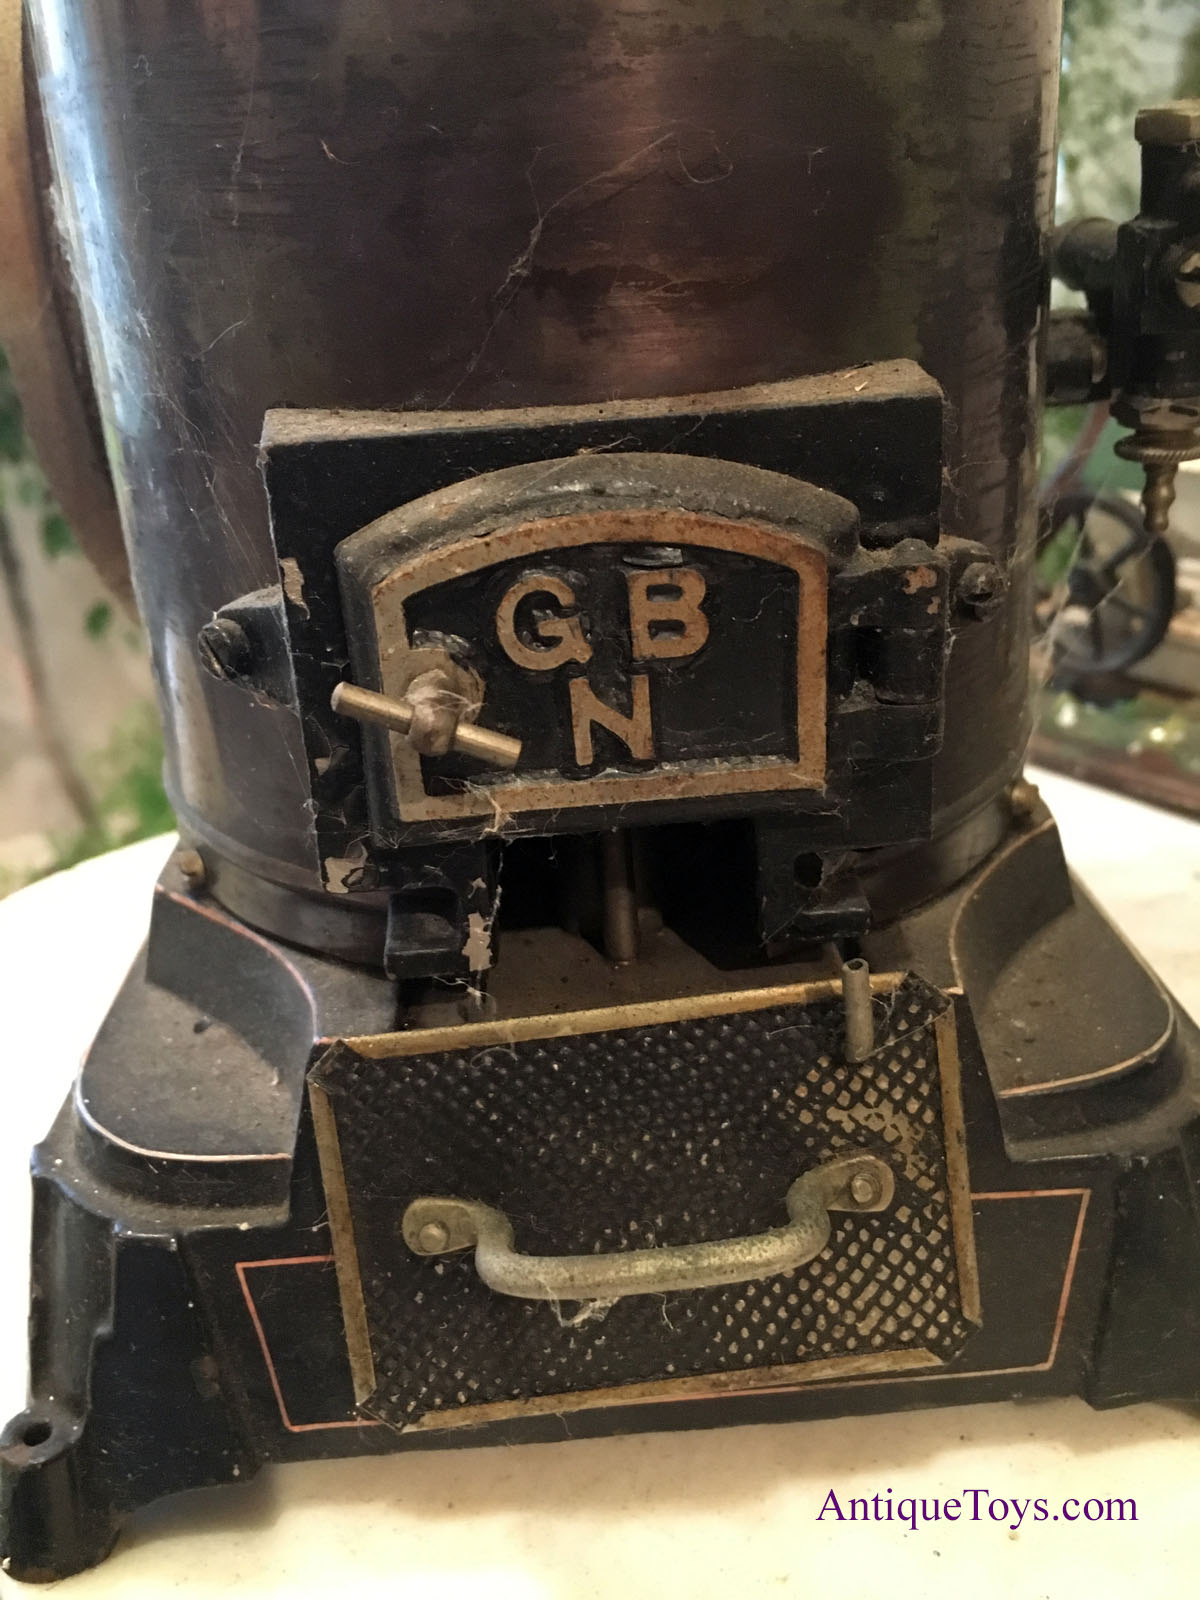 Bing G B N Steam Engine Extra Large Antique Toys For